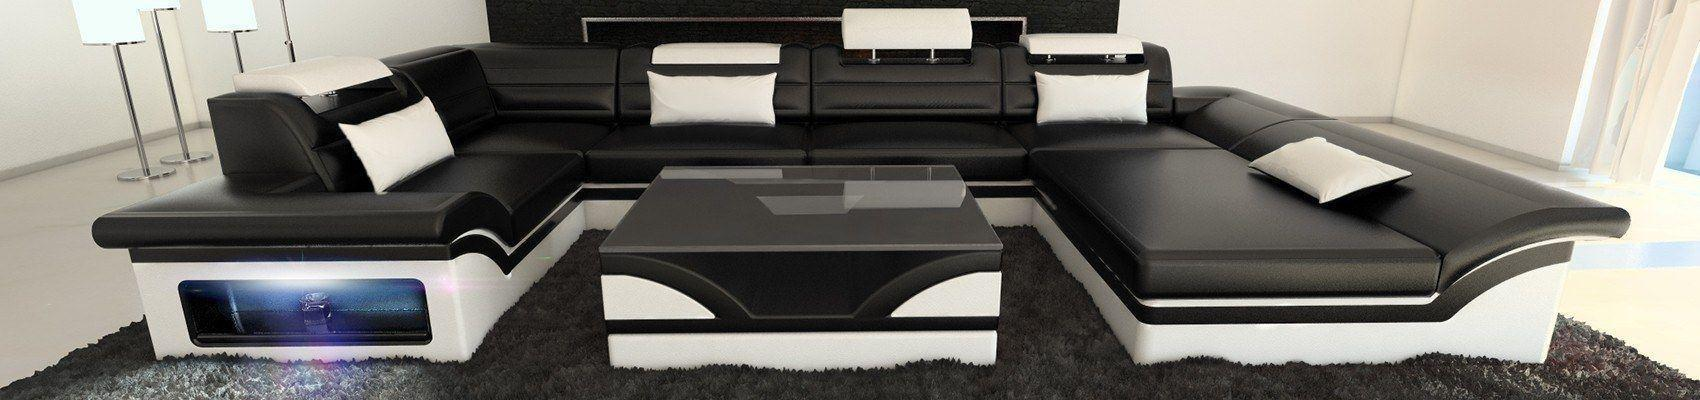 ledersofas u form mit ottomane sofa dreams. Black Bedroom Furniture Sets. Home Design Ideas